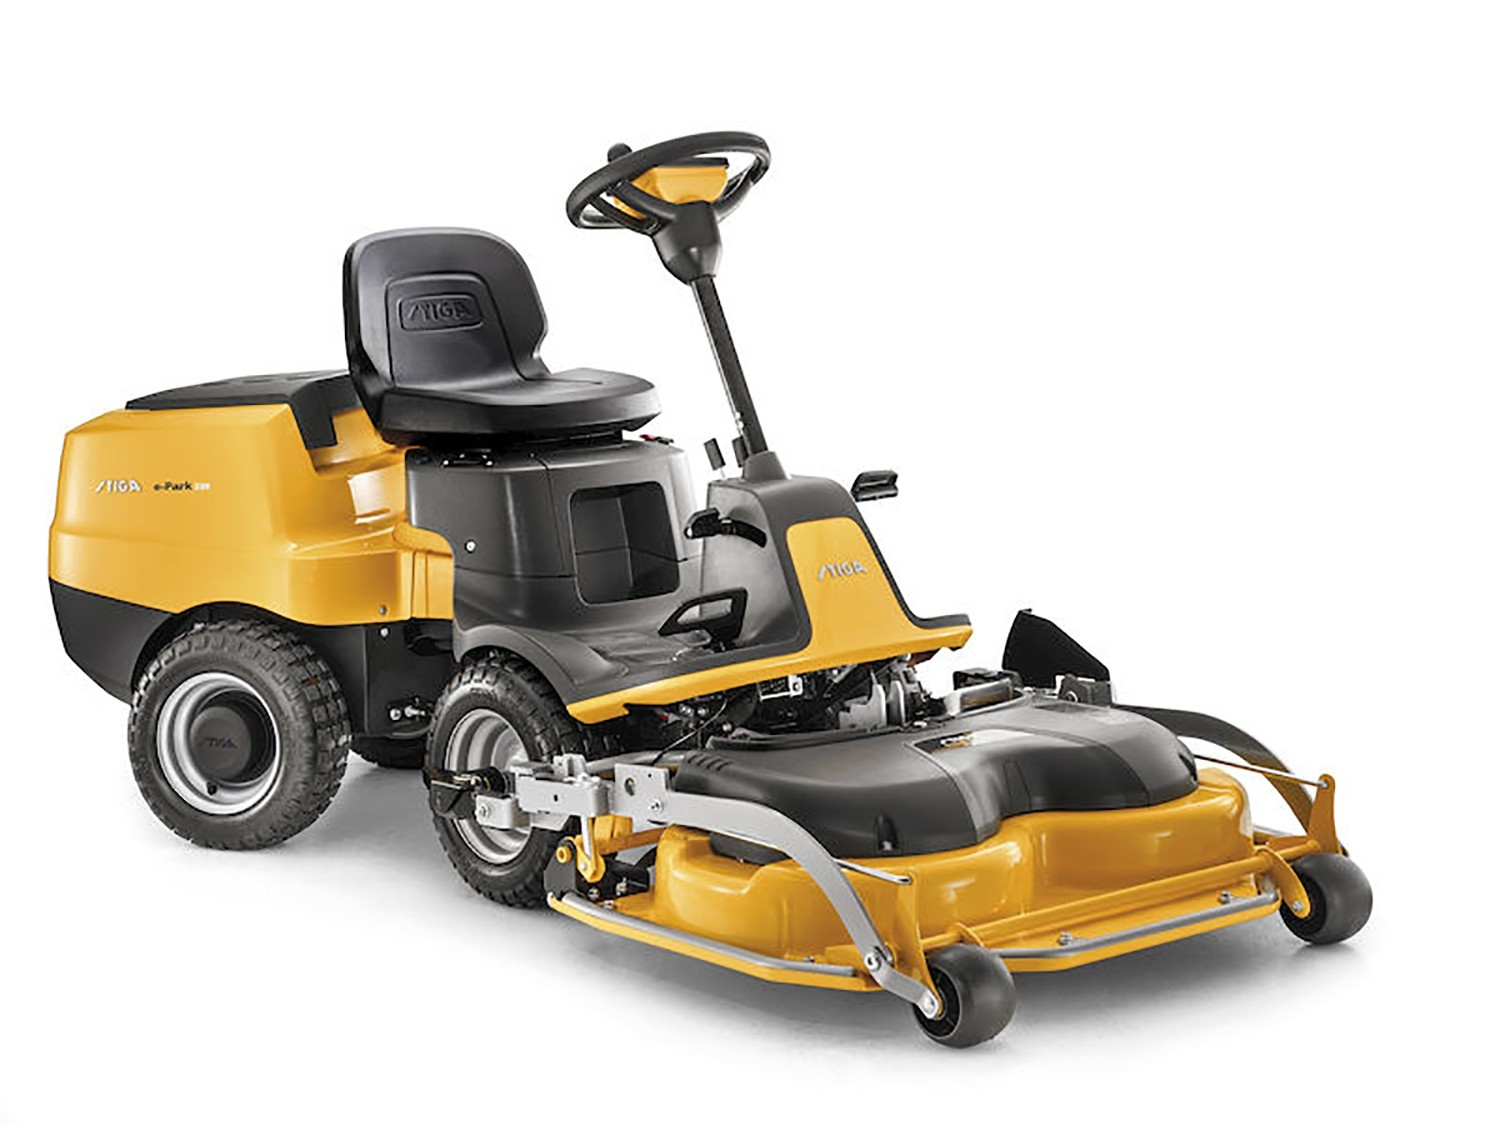 park 220 lawnmower